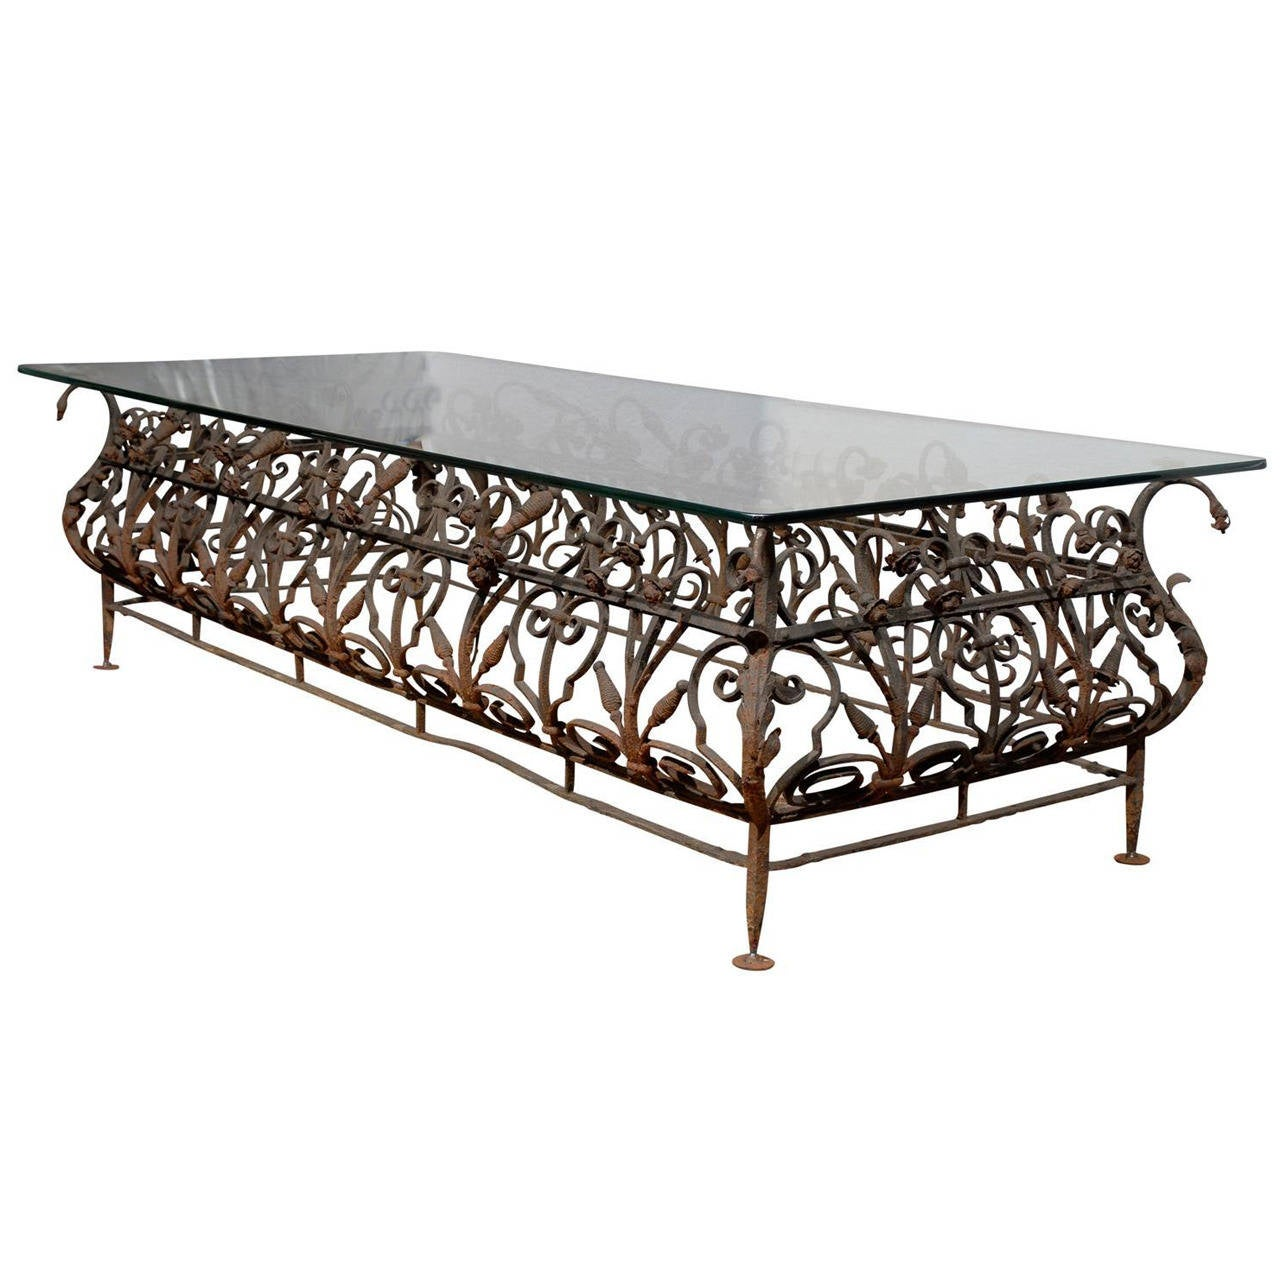 Austrian Mid 19th Century Large Size Wrought Iron And Glass Top Coffee Table For Sale At 1stdibs